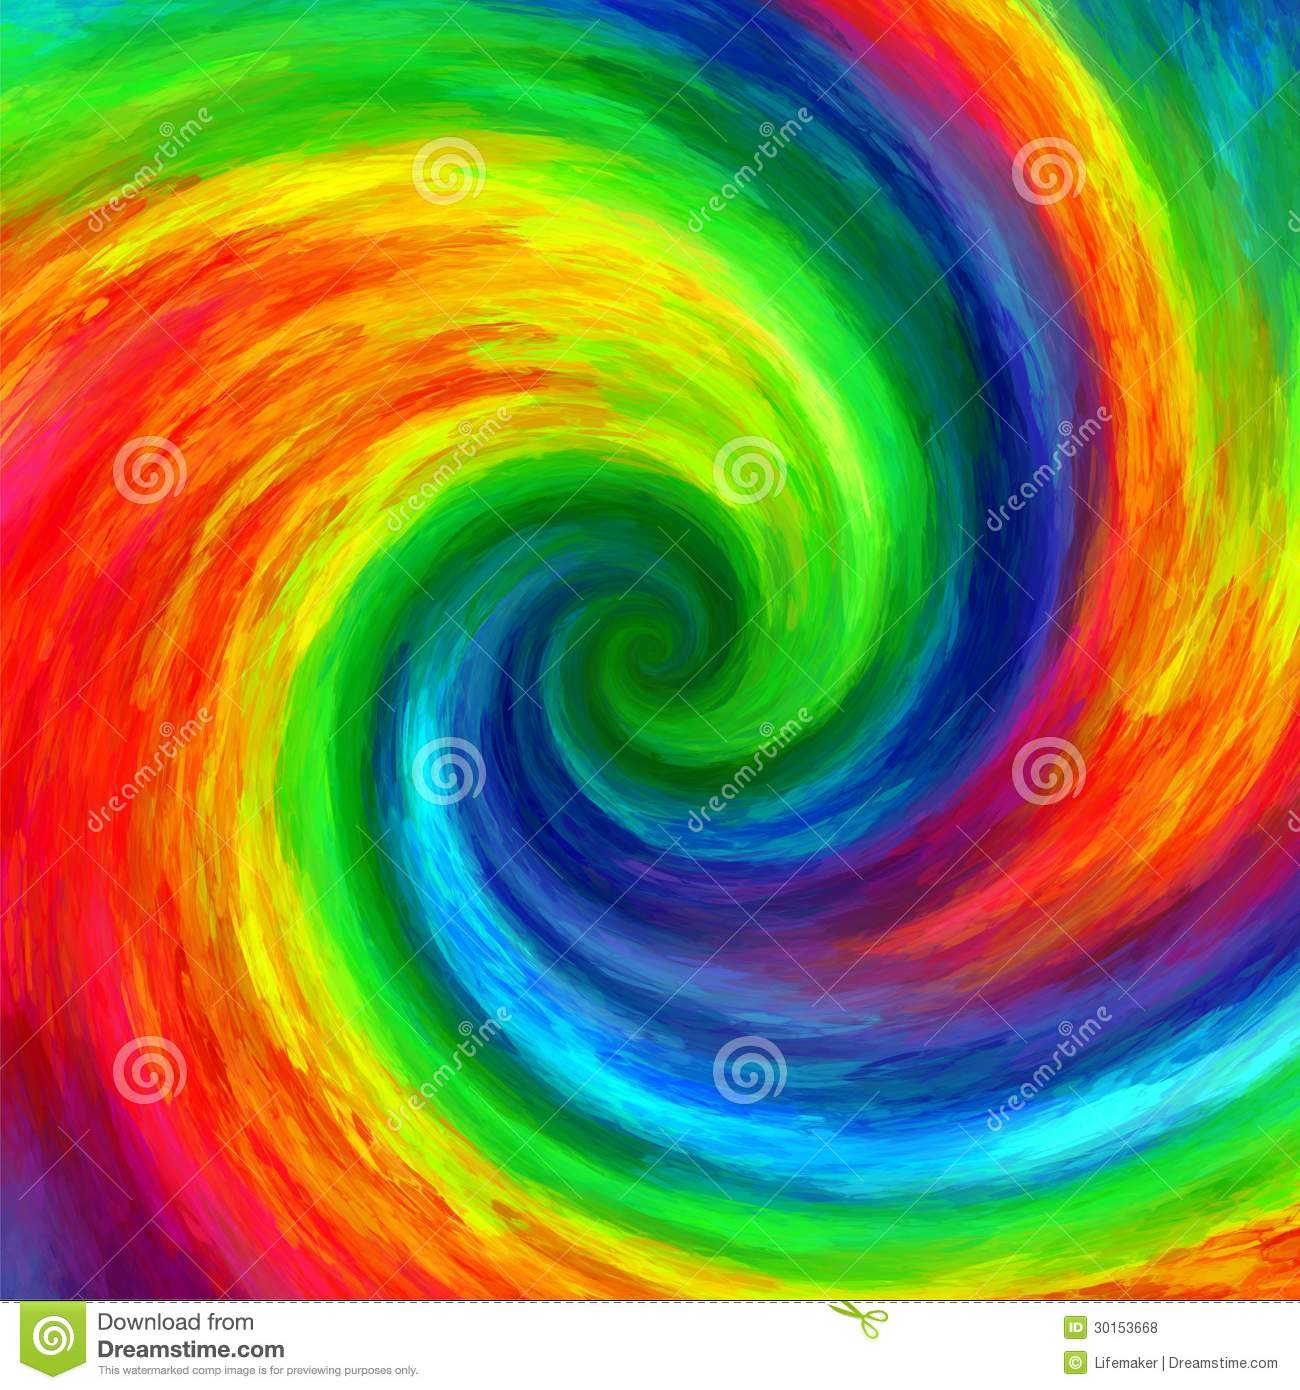 Abstract Art Swirl Rainbow Grunge Colorful Paint